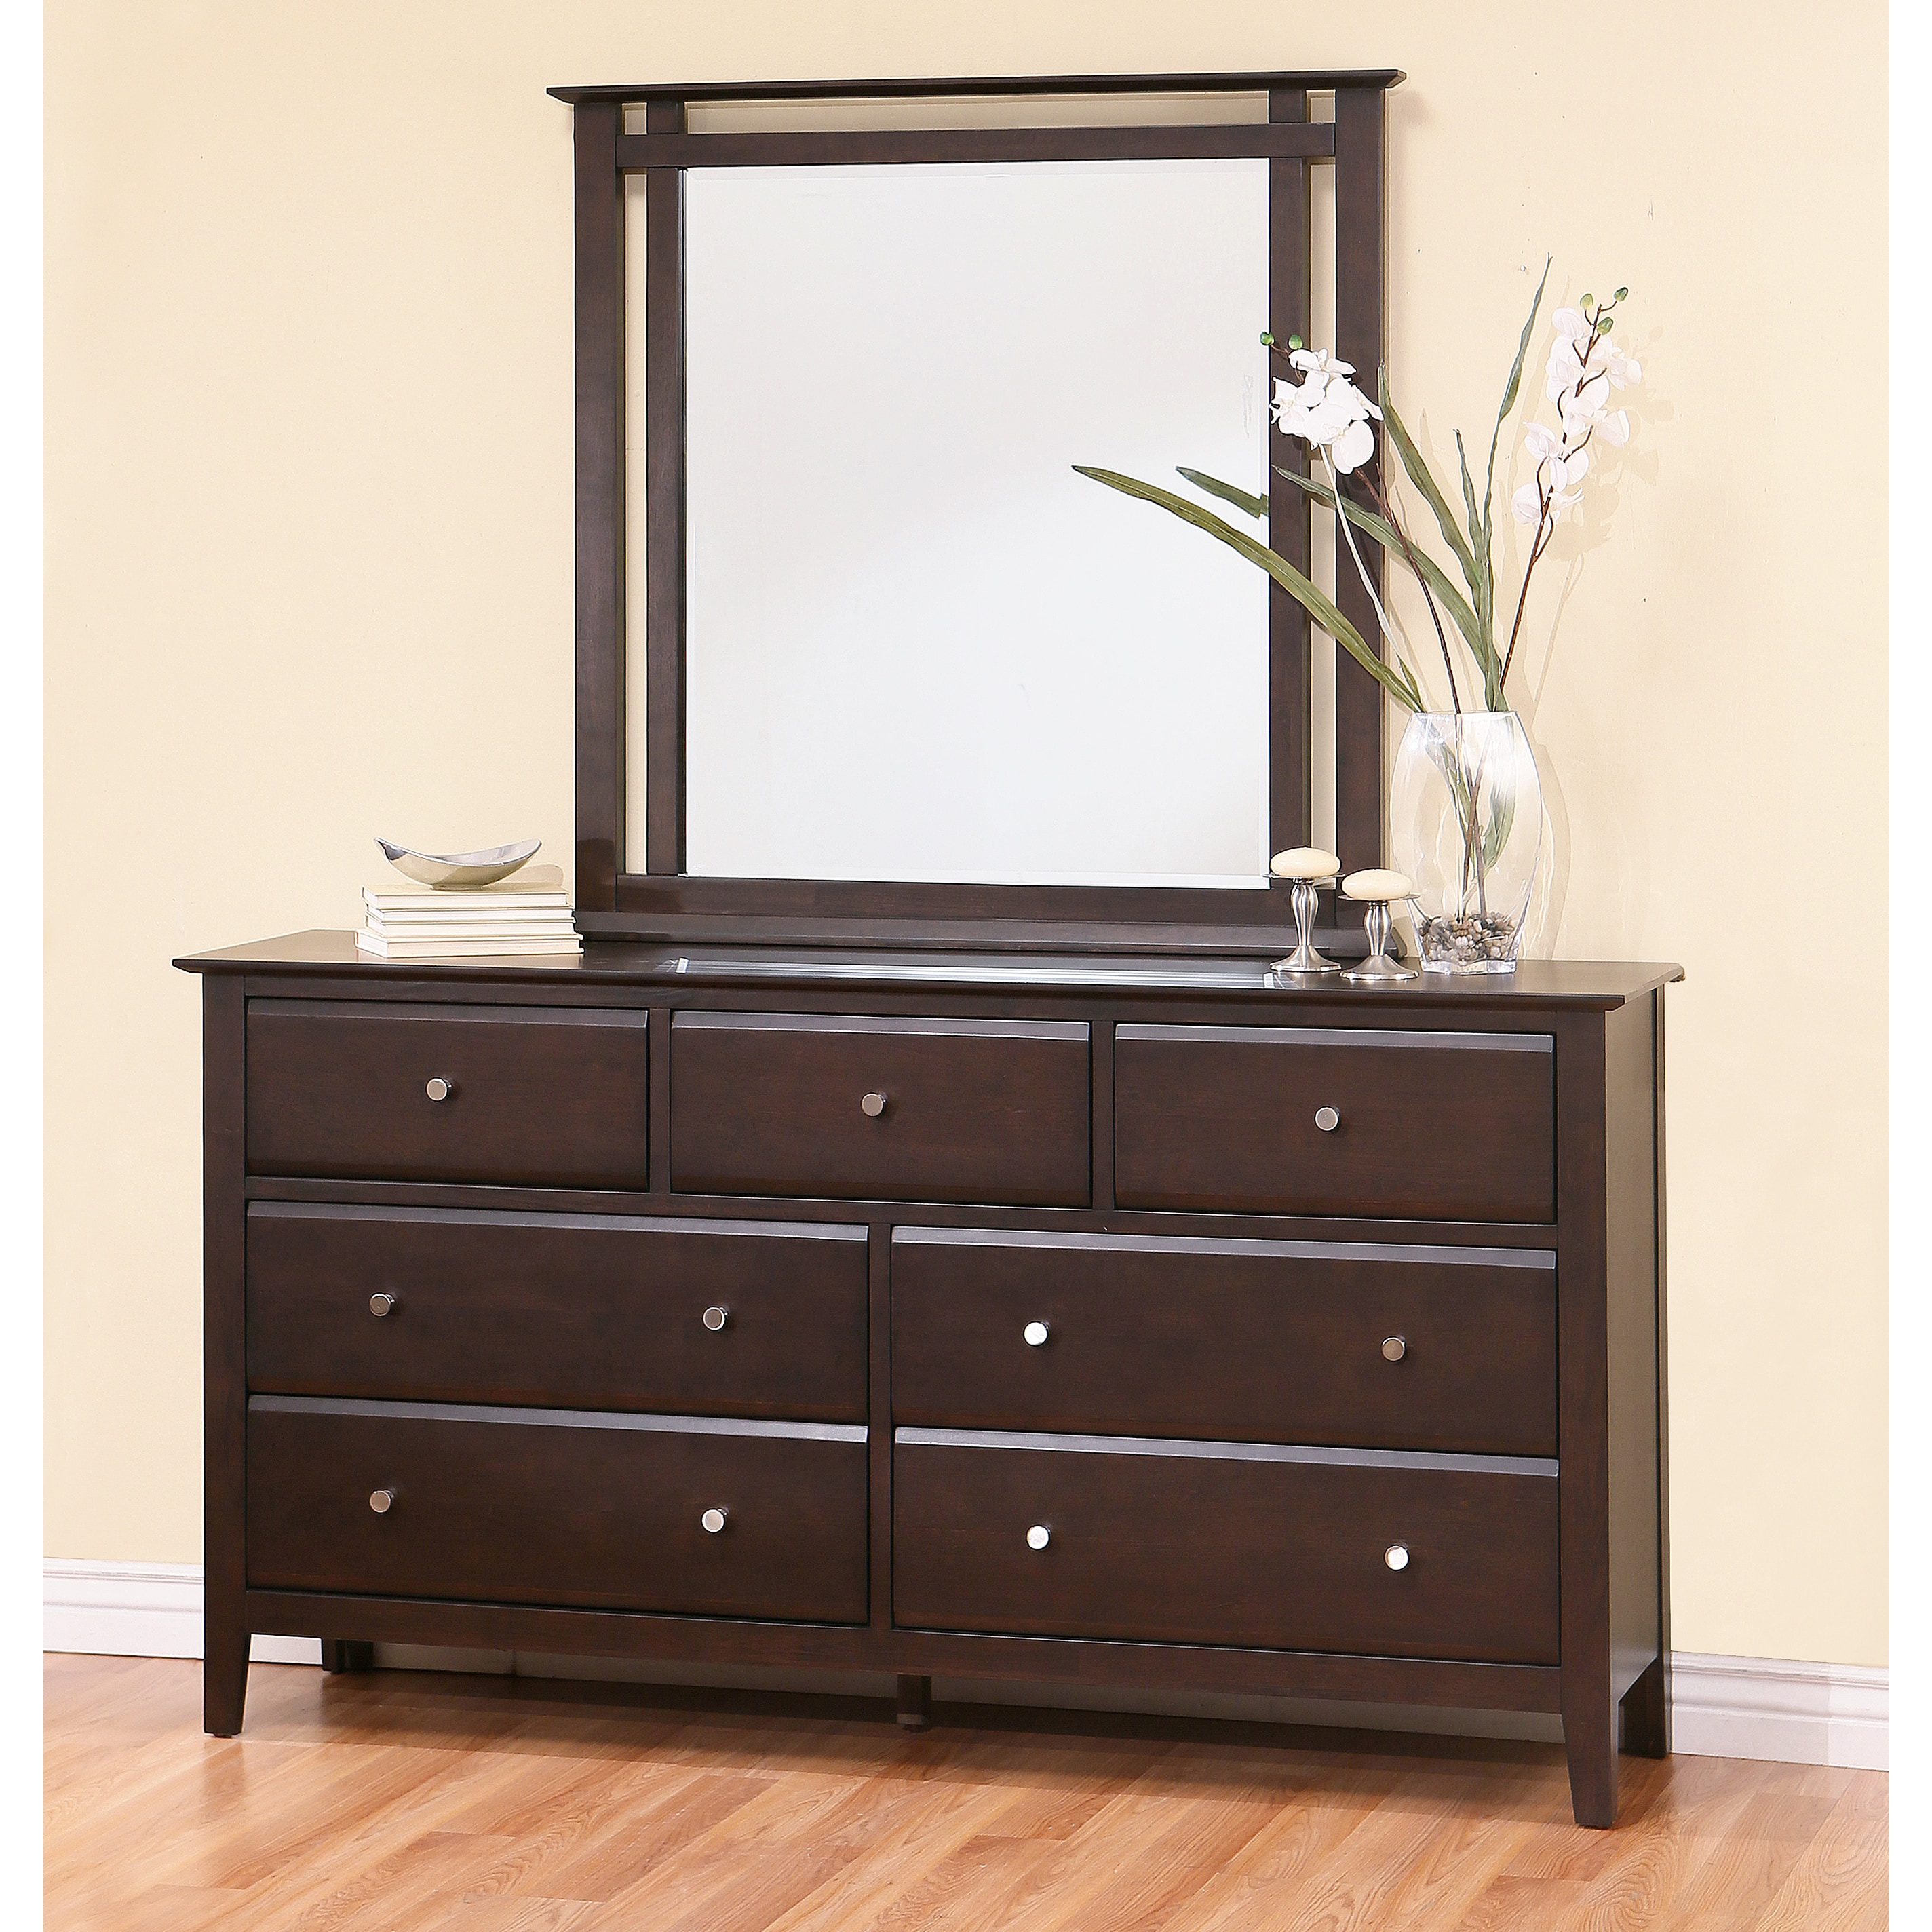 espresso pin grey an double painted awesome hardware sink make base for dressers would with gold vanity dresser